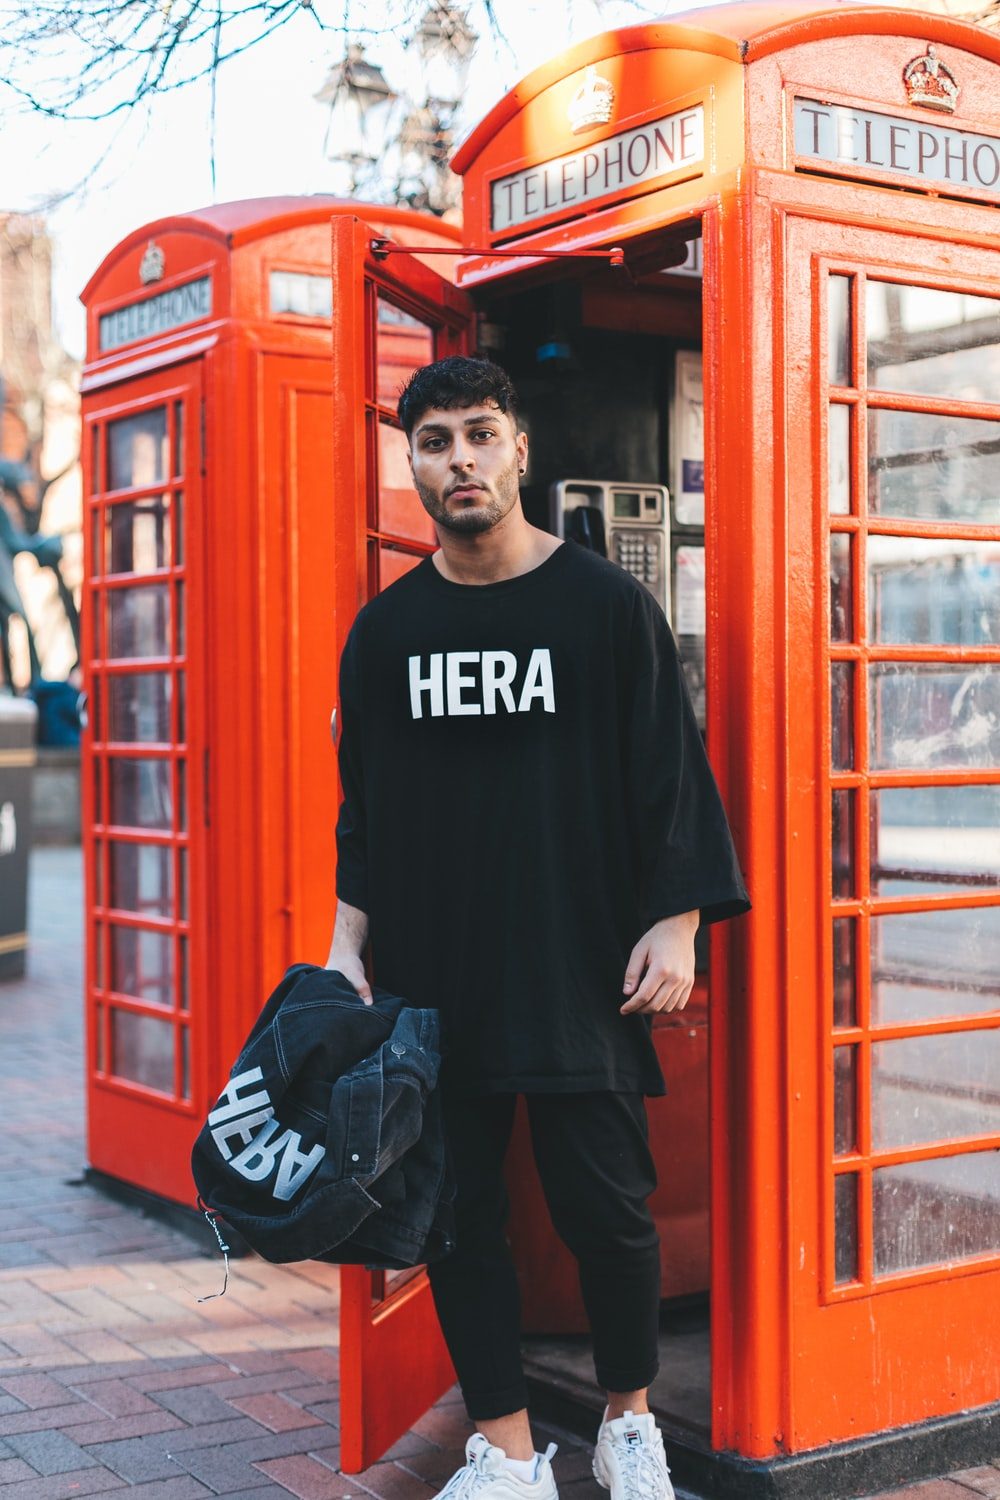 man in black shirt standing near the telephone booth